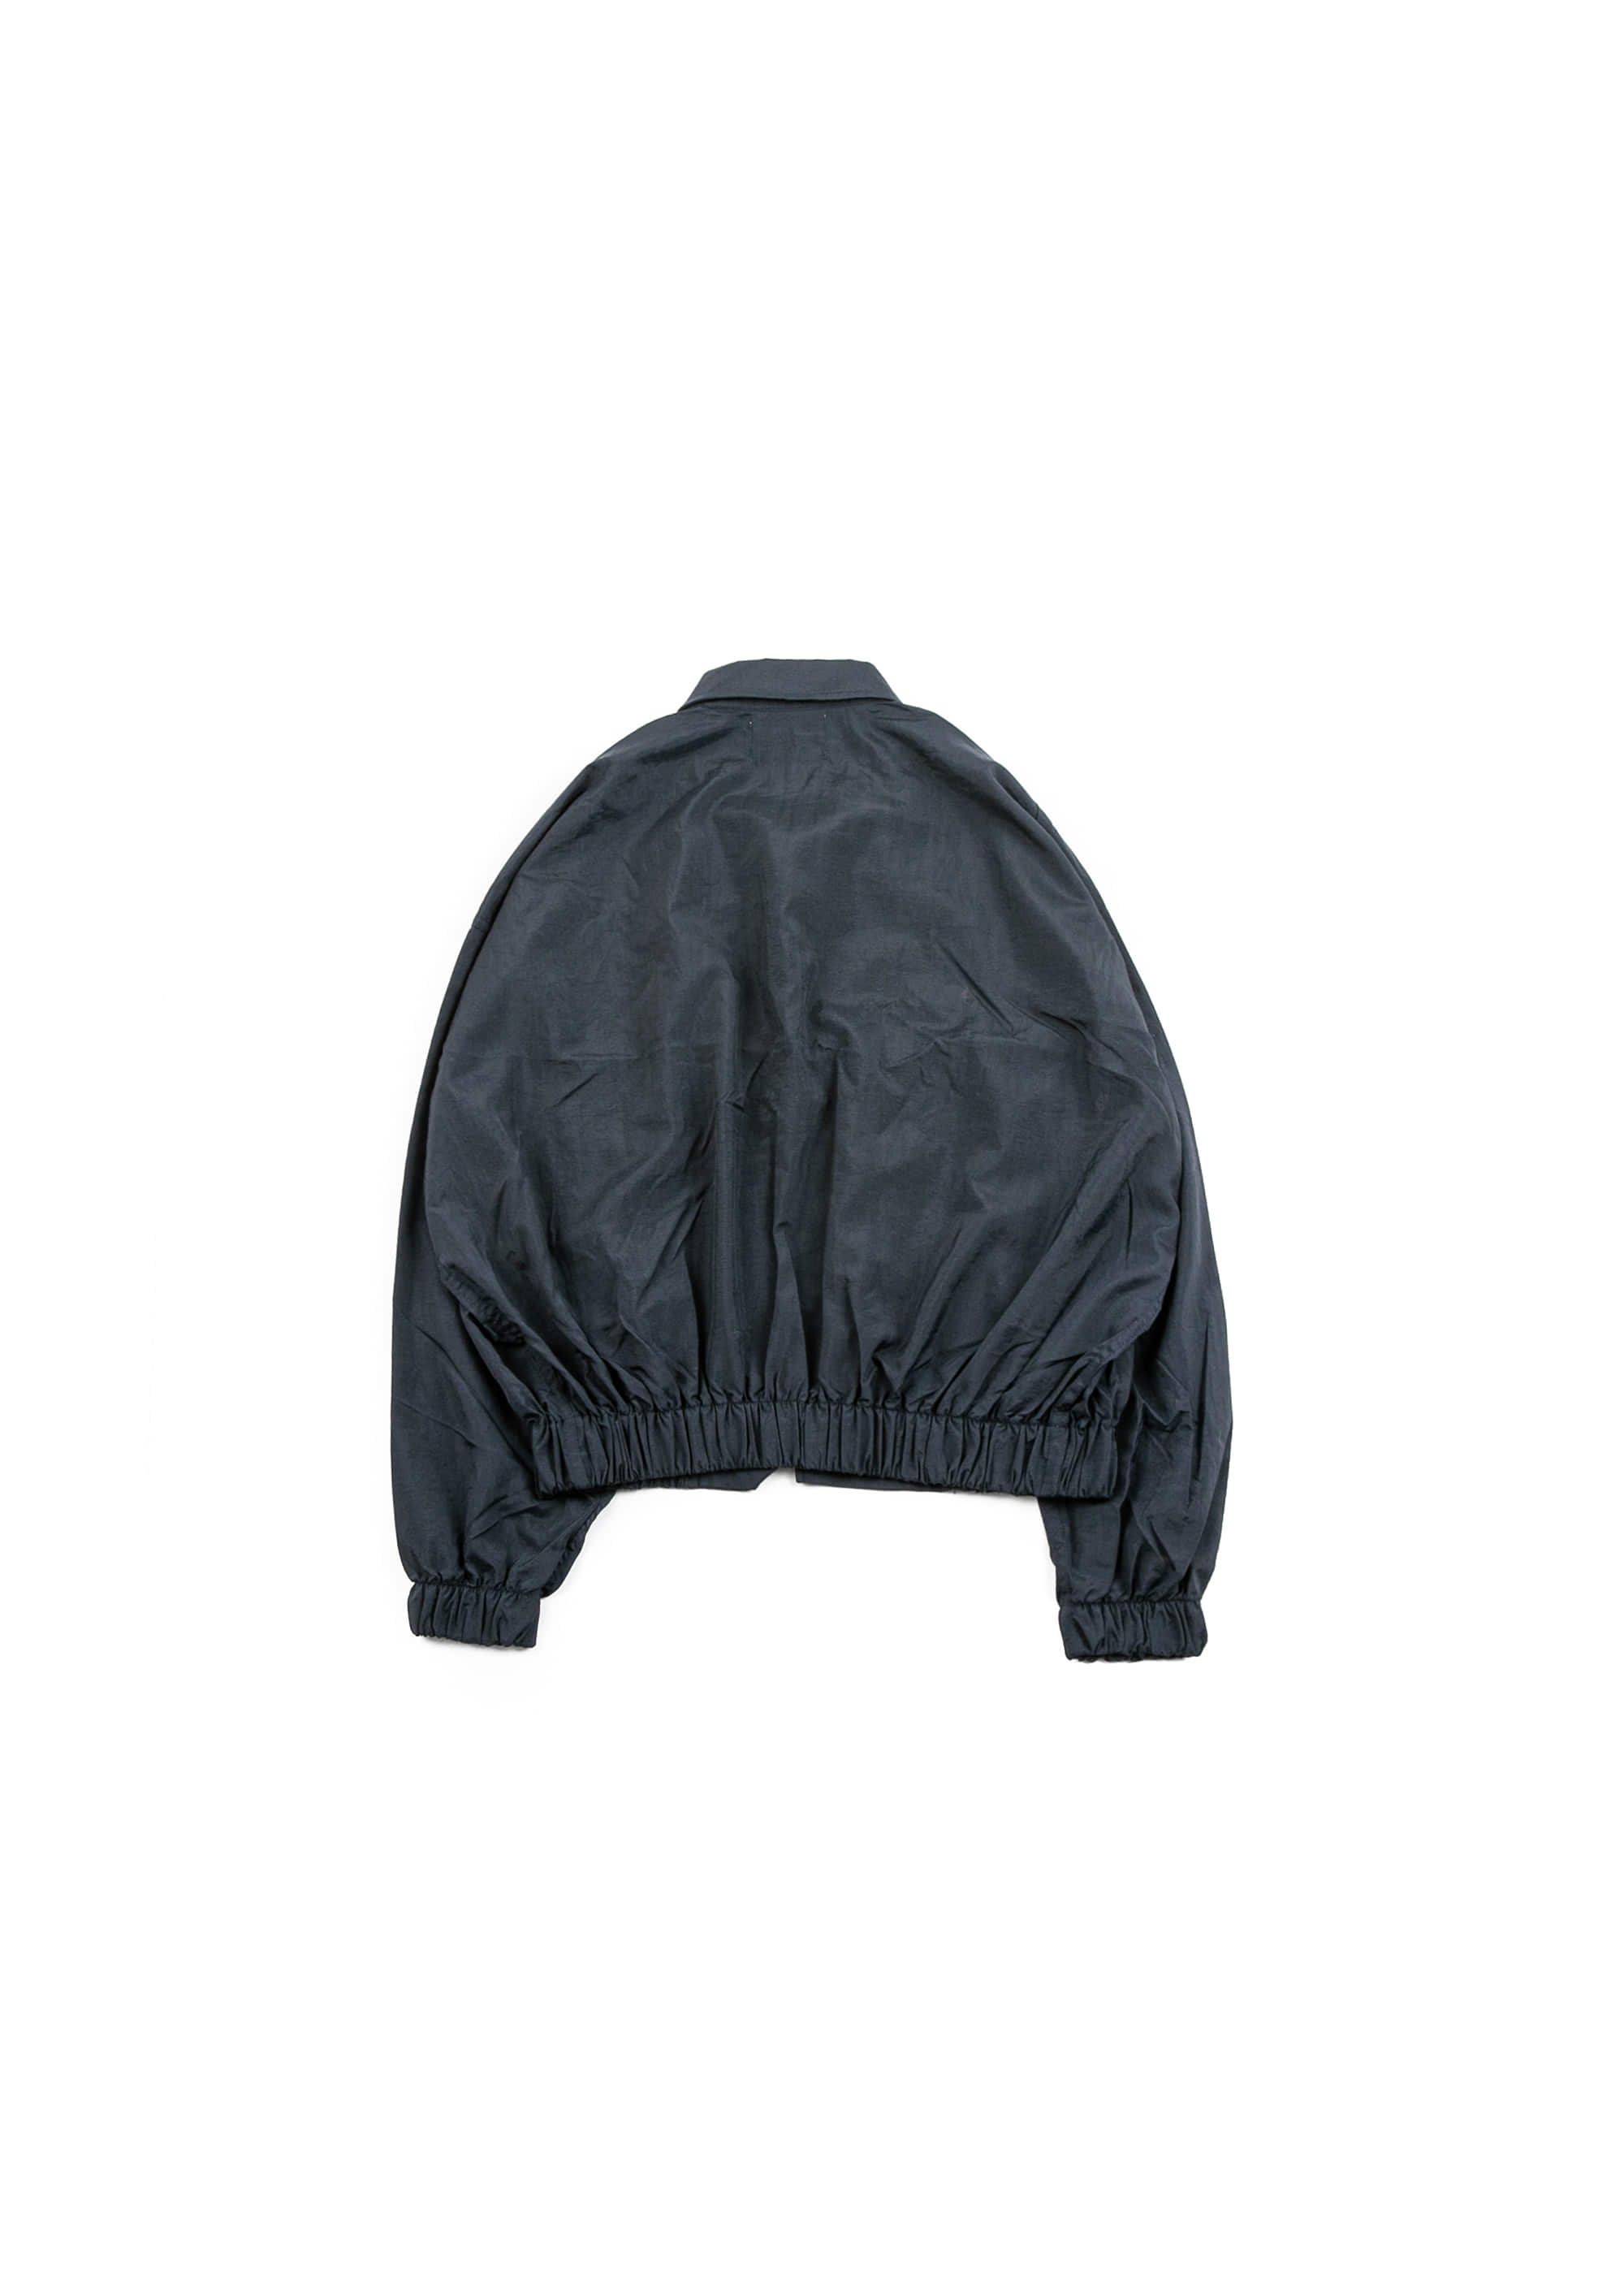 Taffeta Blouson Jacket - Navy [ RE ]